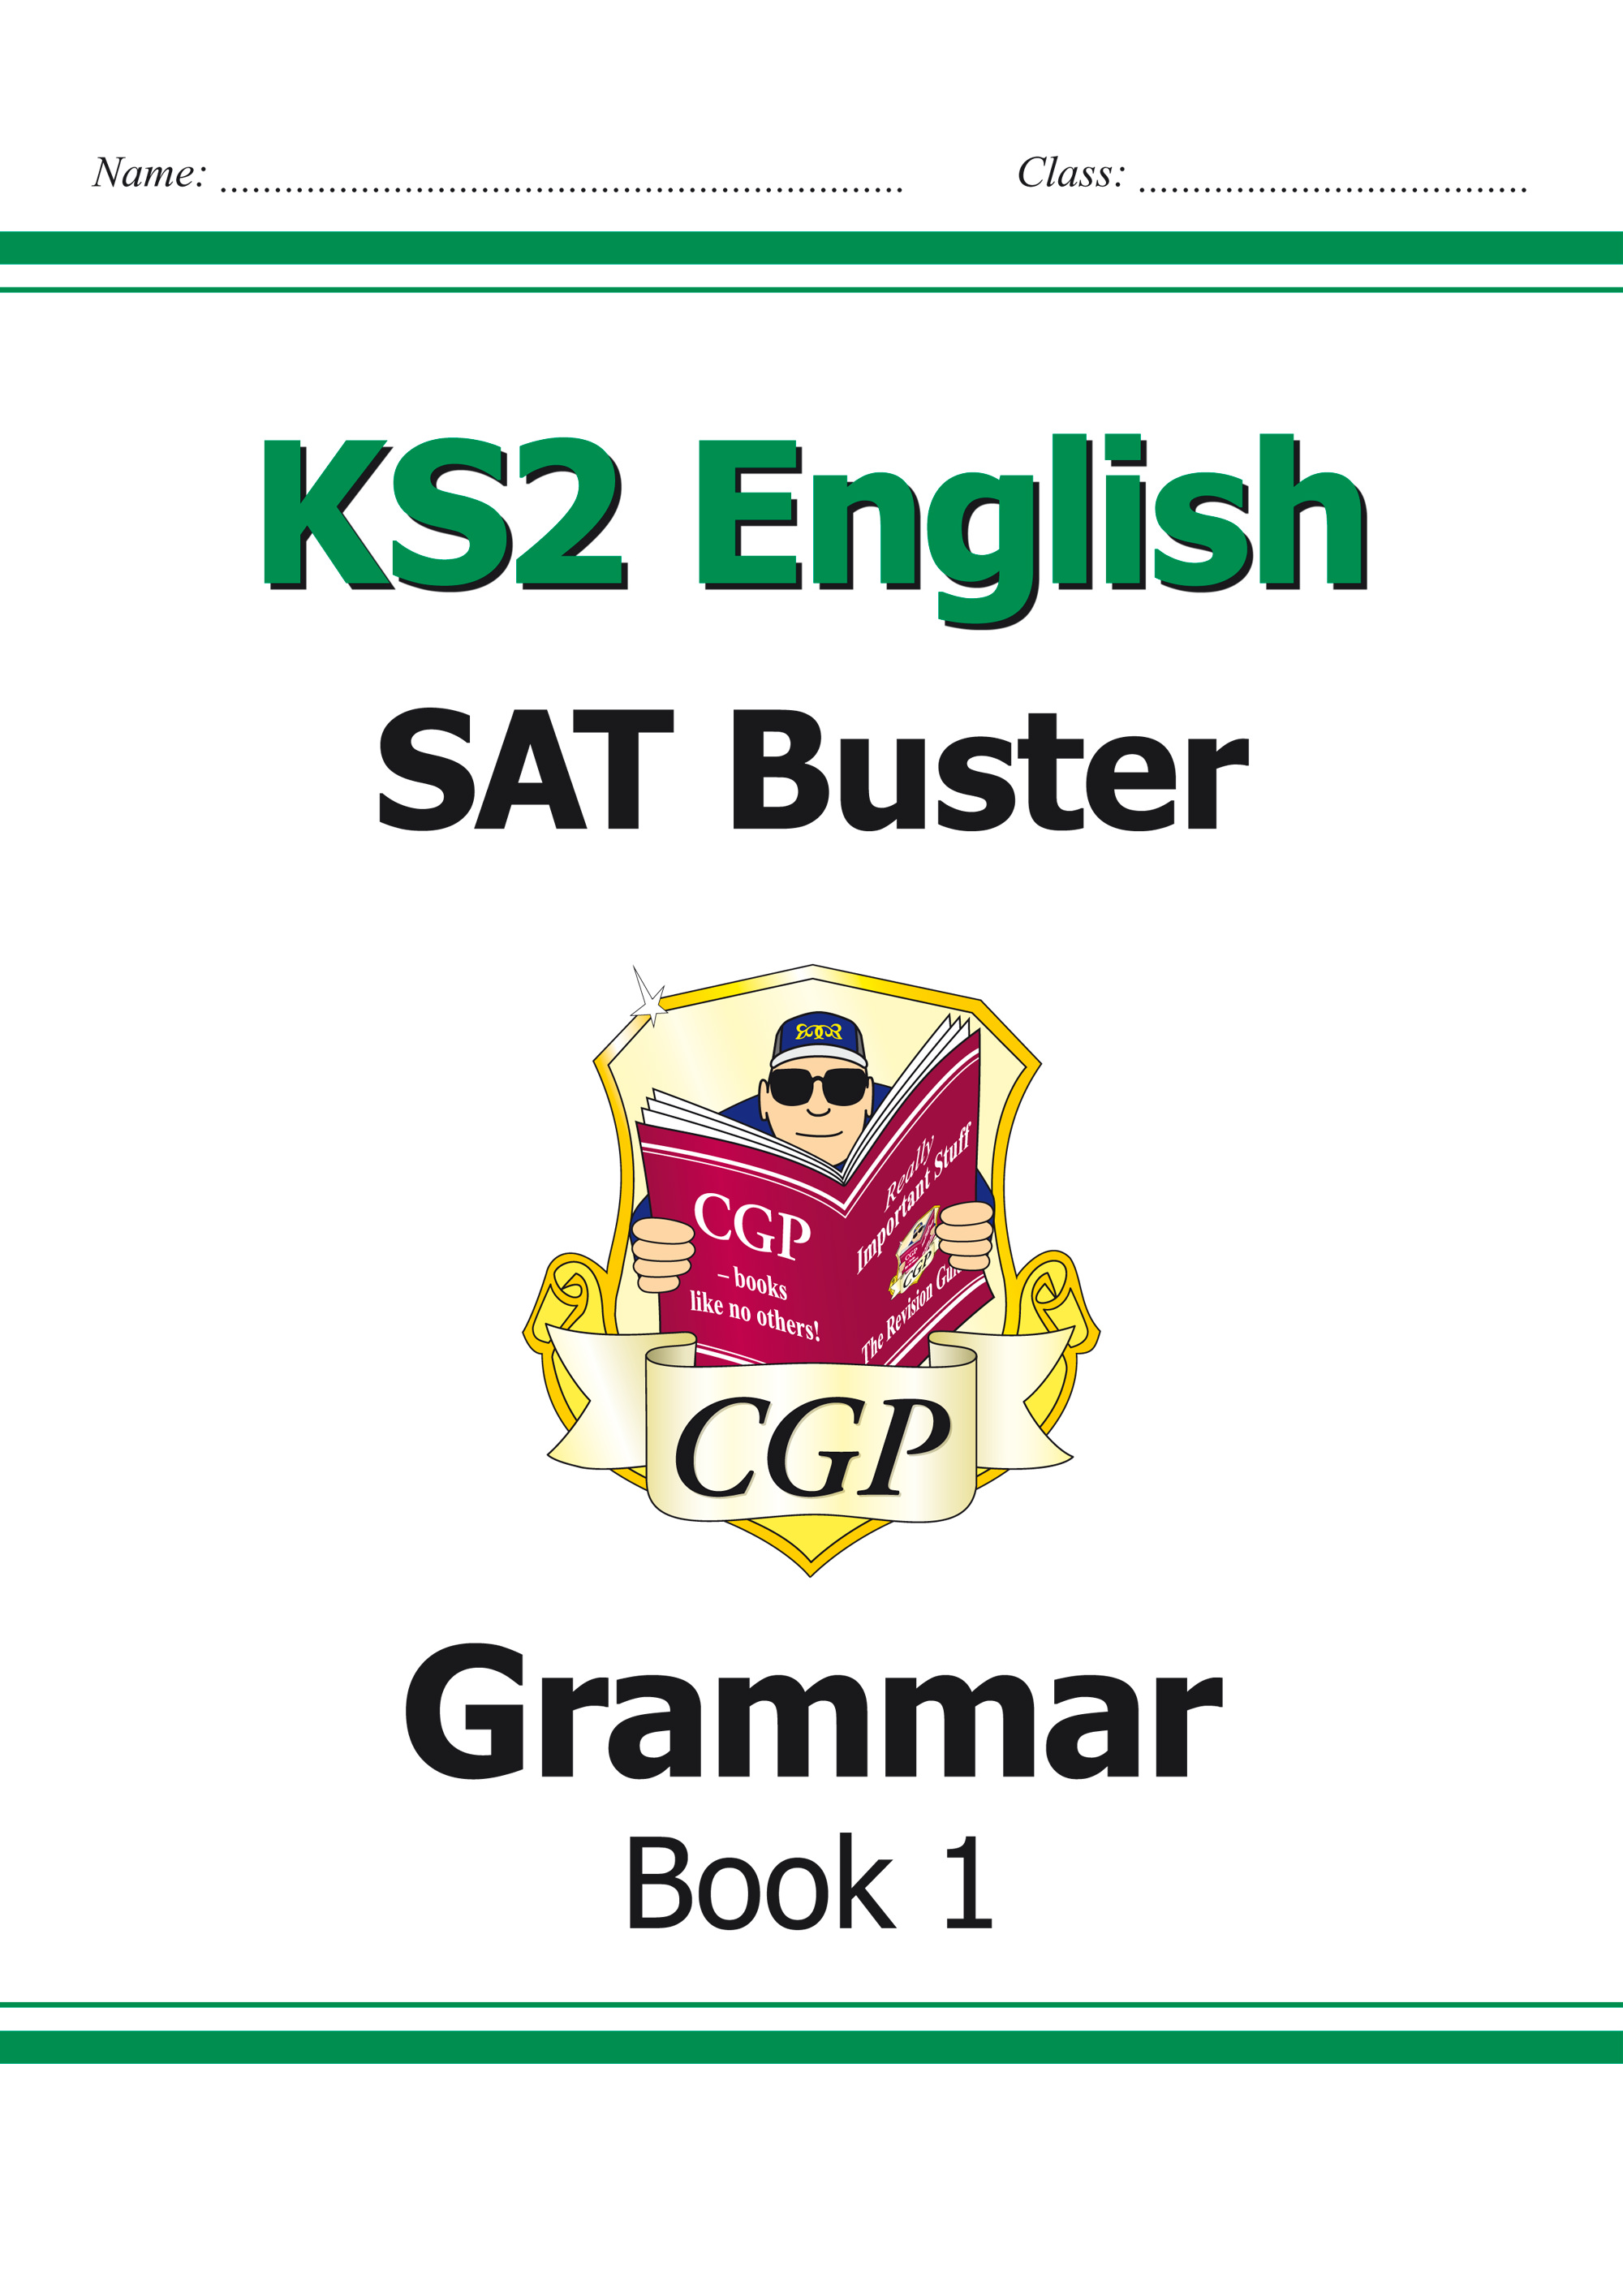 E6G22 - KS2 English SAT Buster: Grammar Book 1 (for tests in 2018 and beyond)